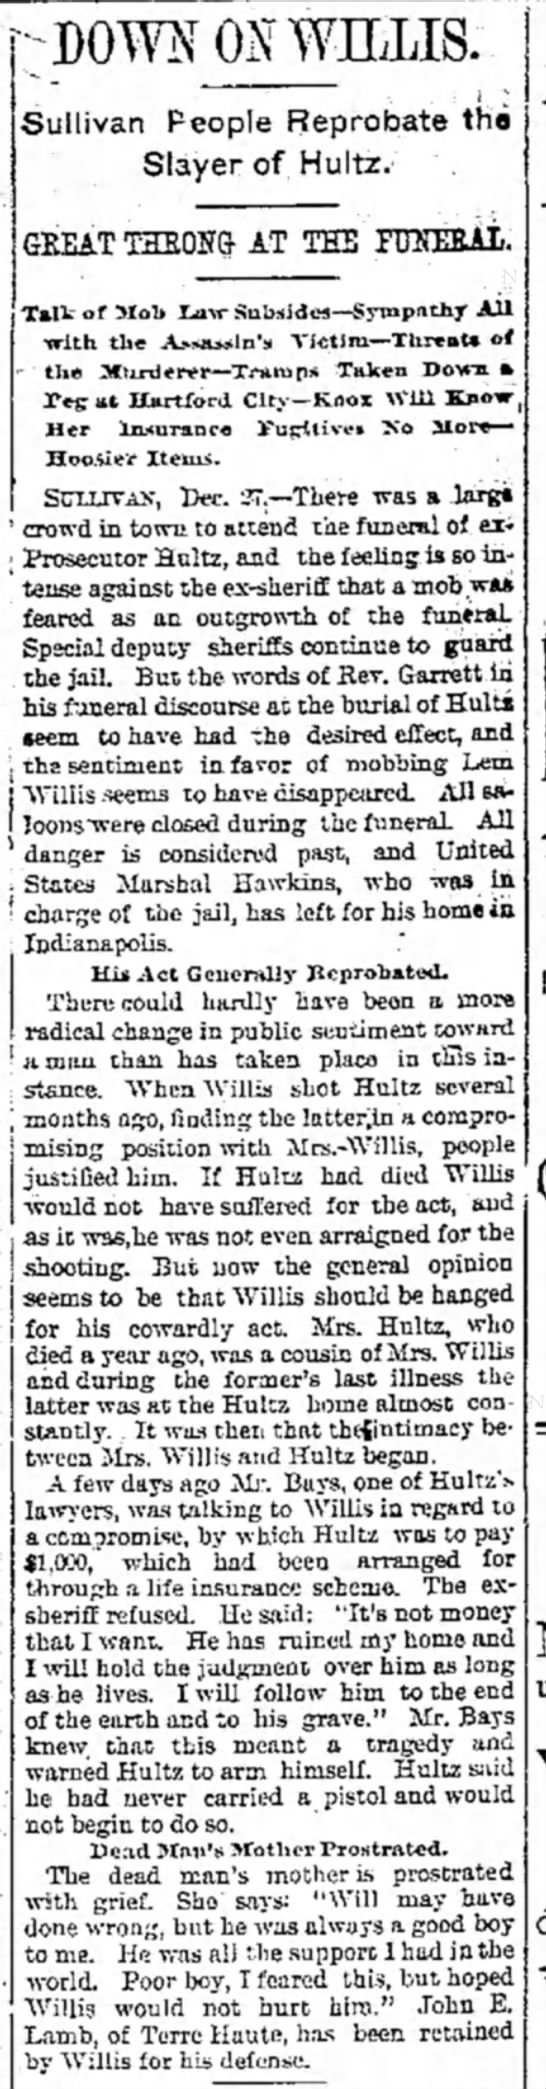 27 Dec 1893 Prosecutor Hultz - y WILLIS:. Sullivan People Reprobate tho Slayer...